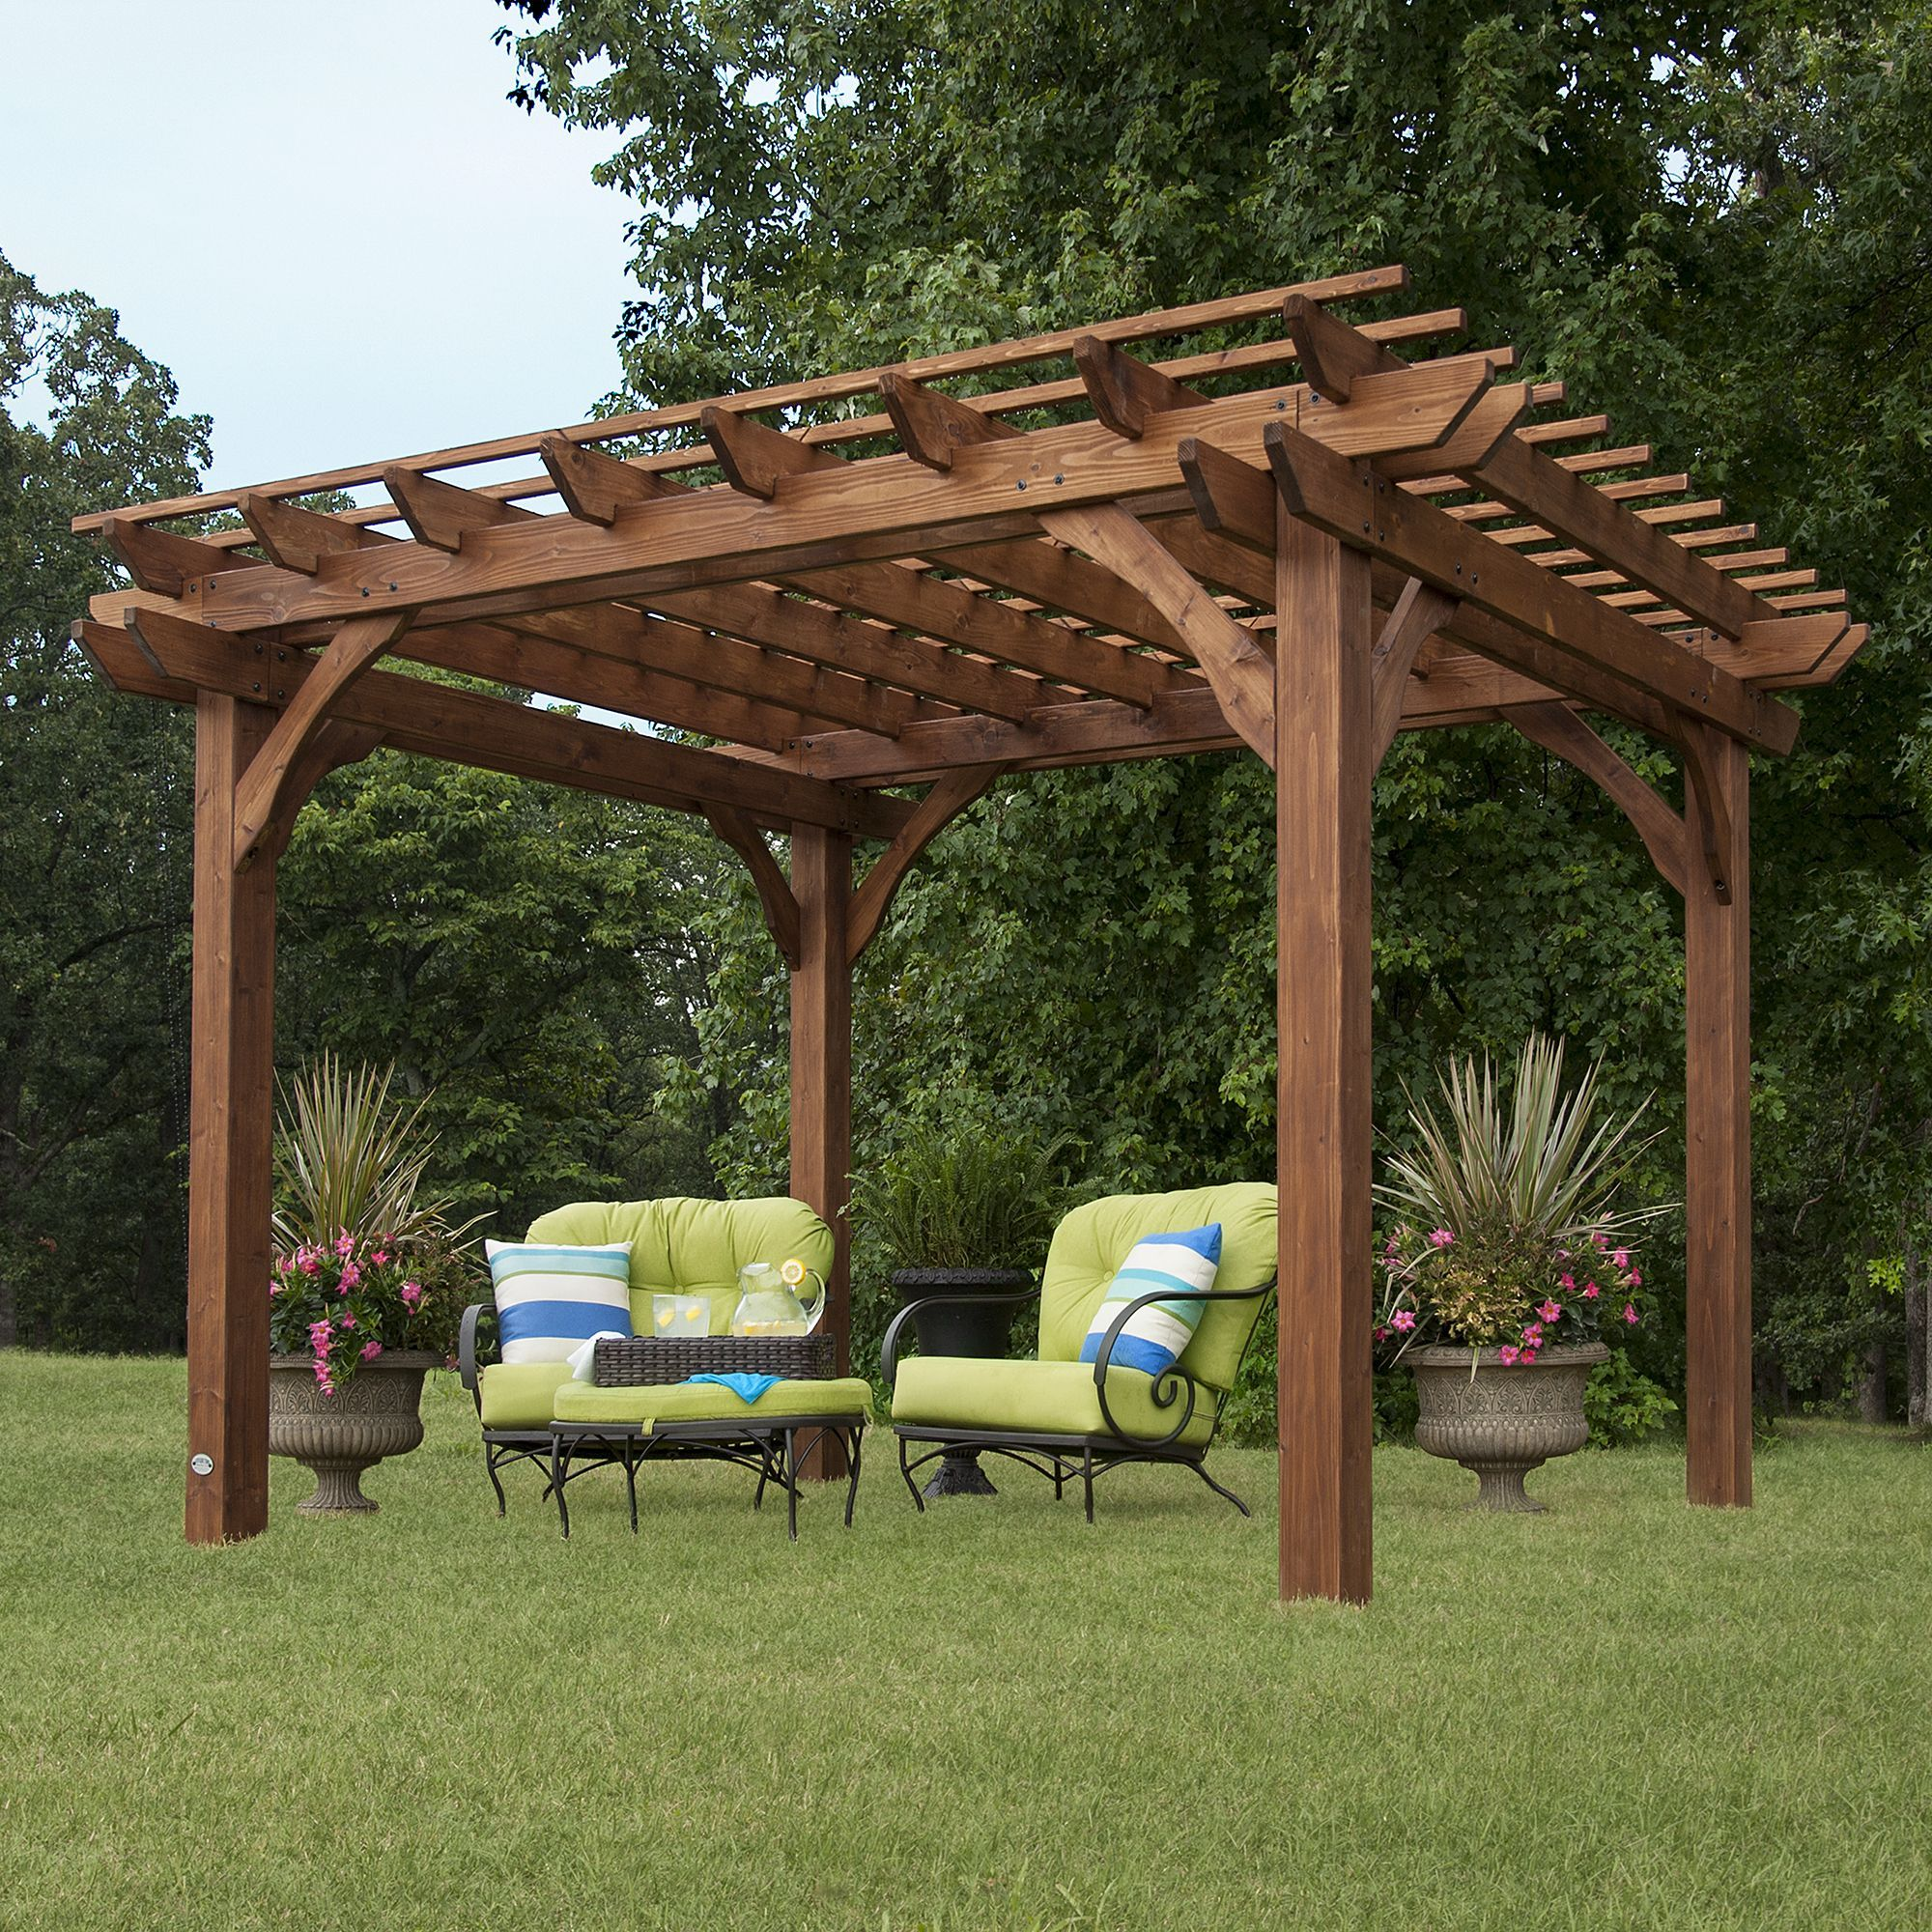 Backyard Discovery Cedar Pergola 10 X 12 Cedar Wood Brown Products Wood Pergola Cedar Pergola Pergola